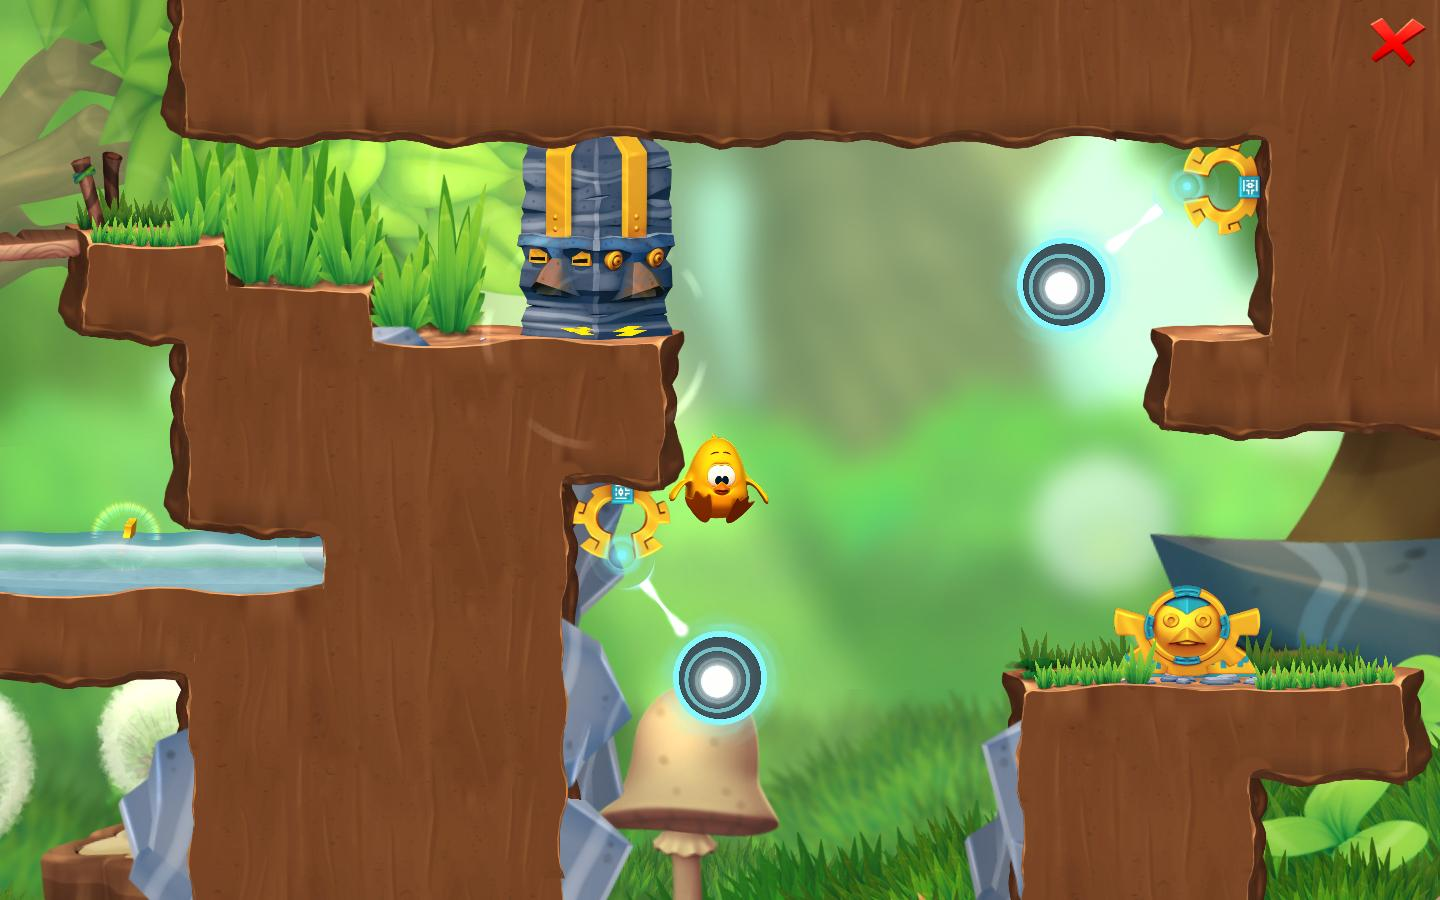 Toki Tori 2 is now 25% off in NA